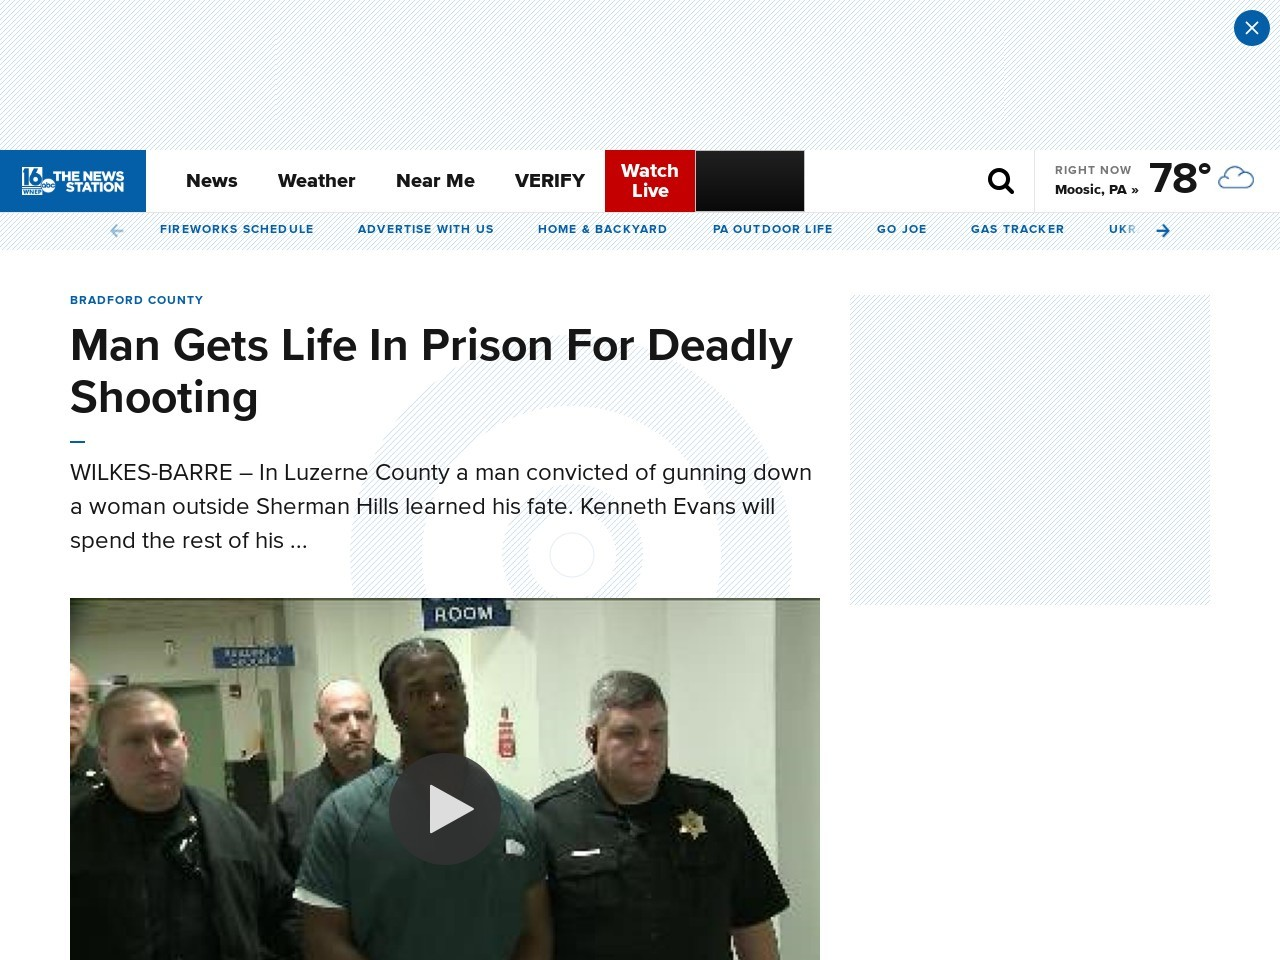 Man Gets Life In Prison For Deadly Shooting